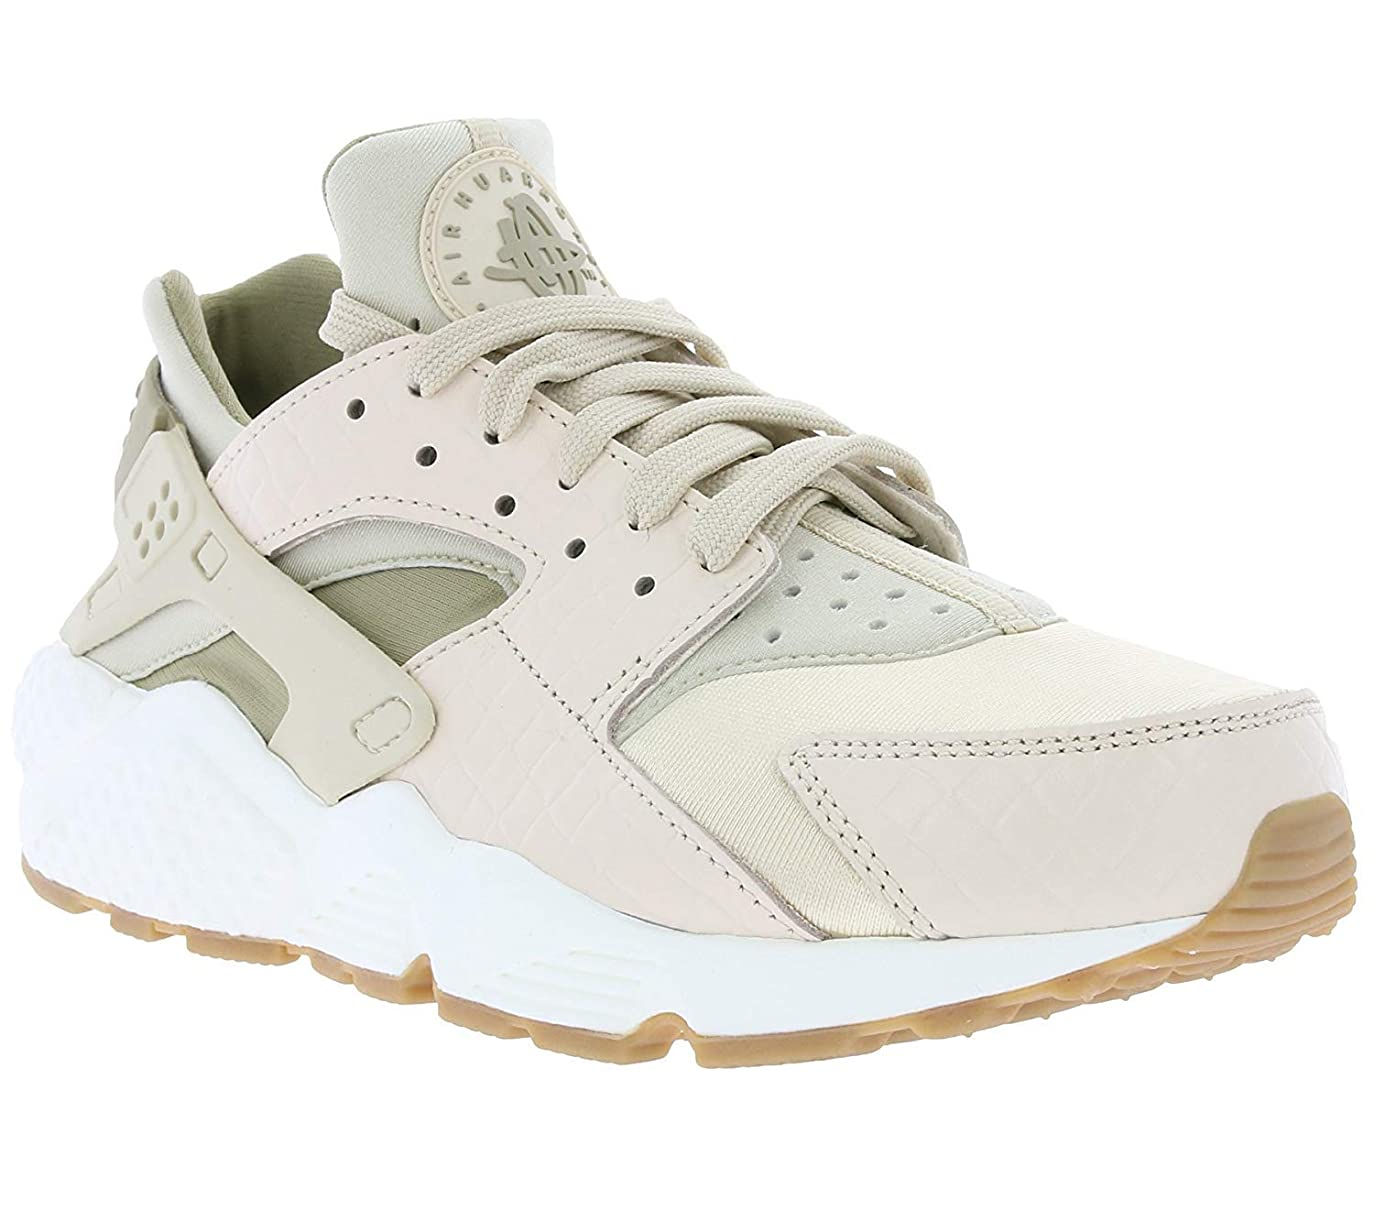 昇る正直韓国[ナイキ] Womens Air Huarache Run prm Low Top Lace Up Fashion Sneakers [並行輸入品]